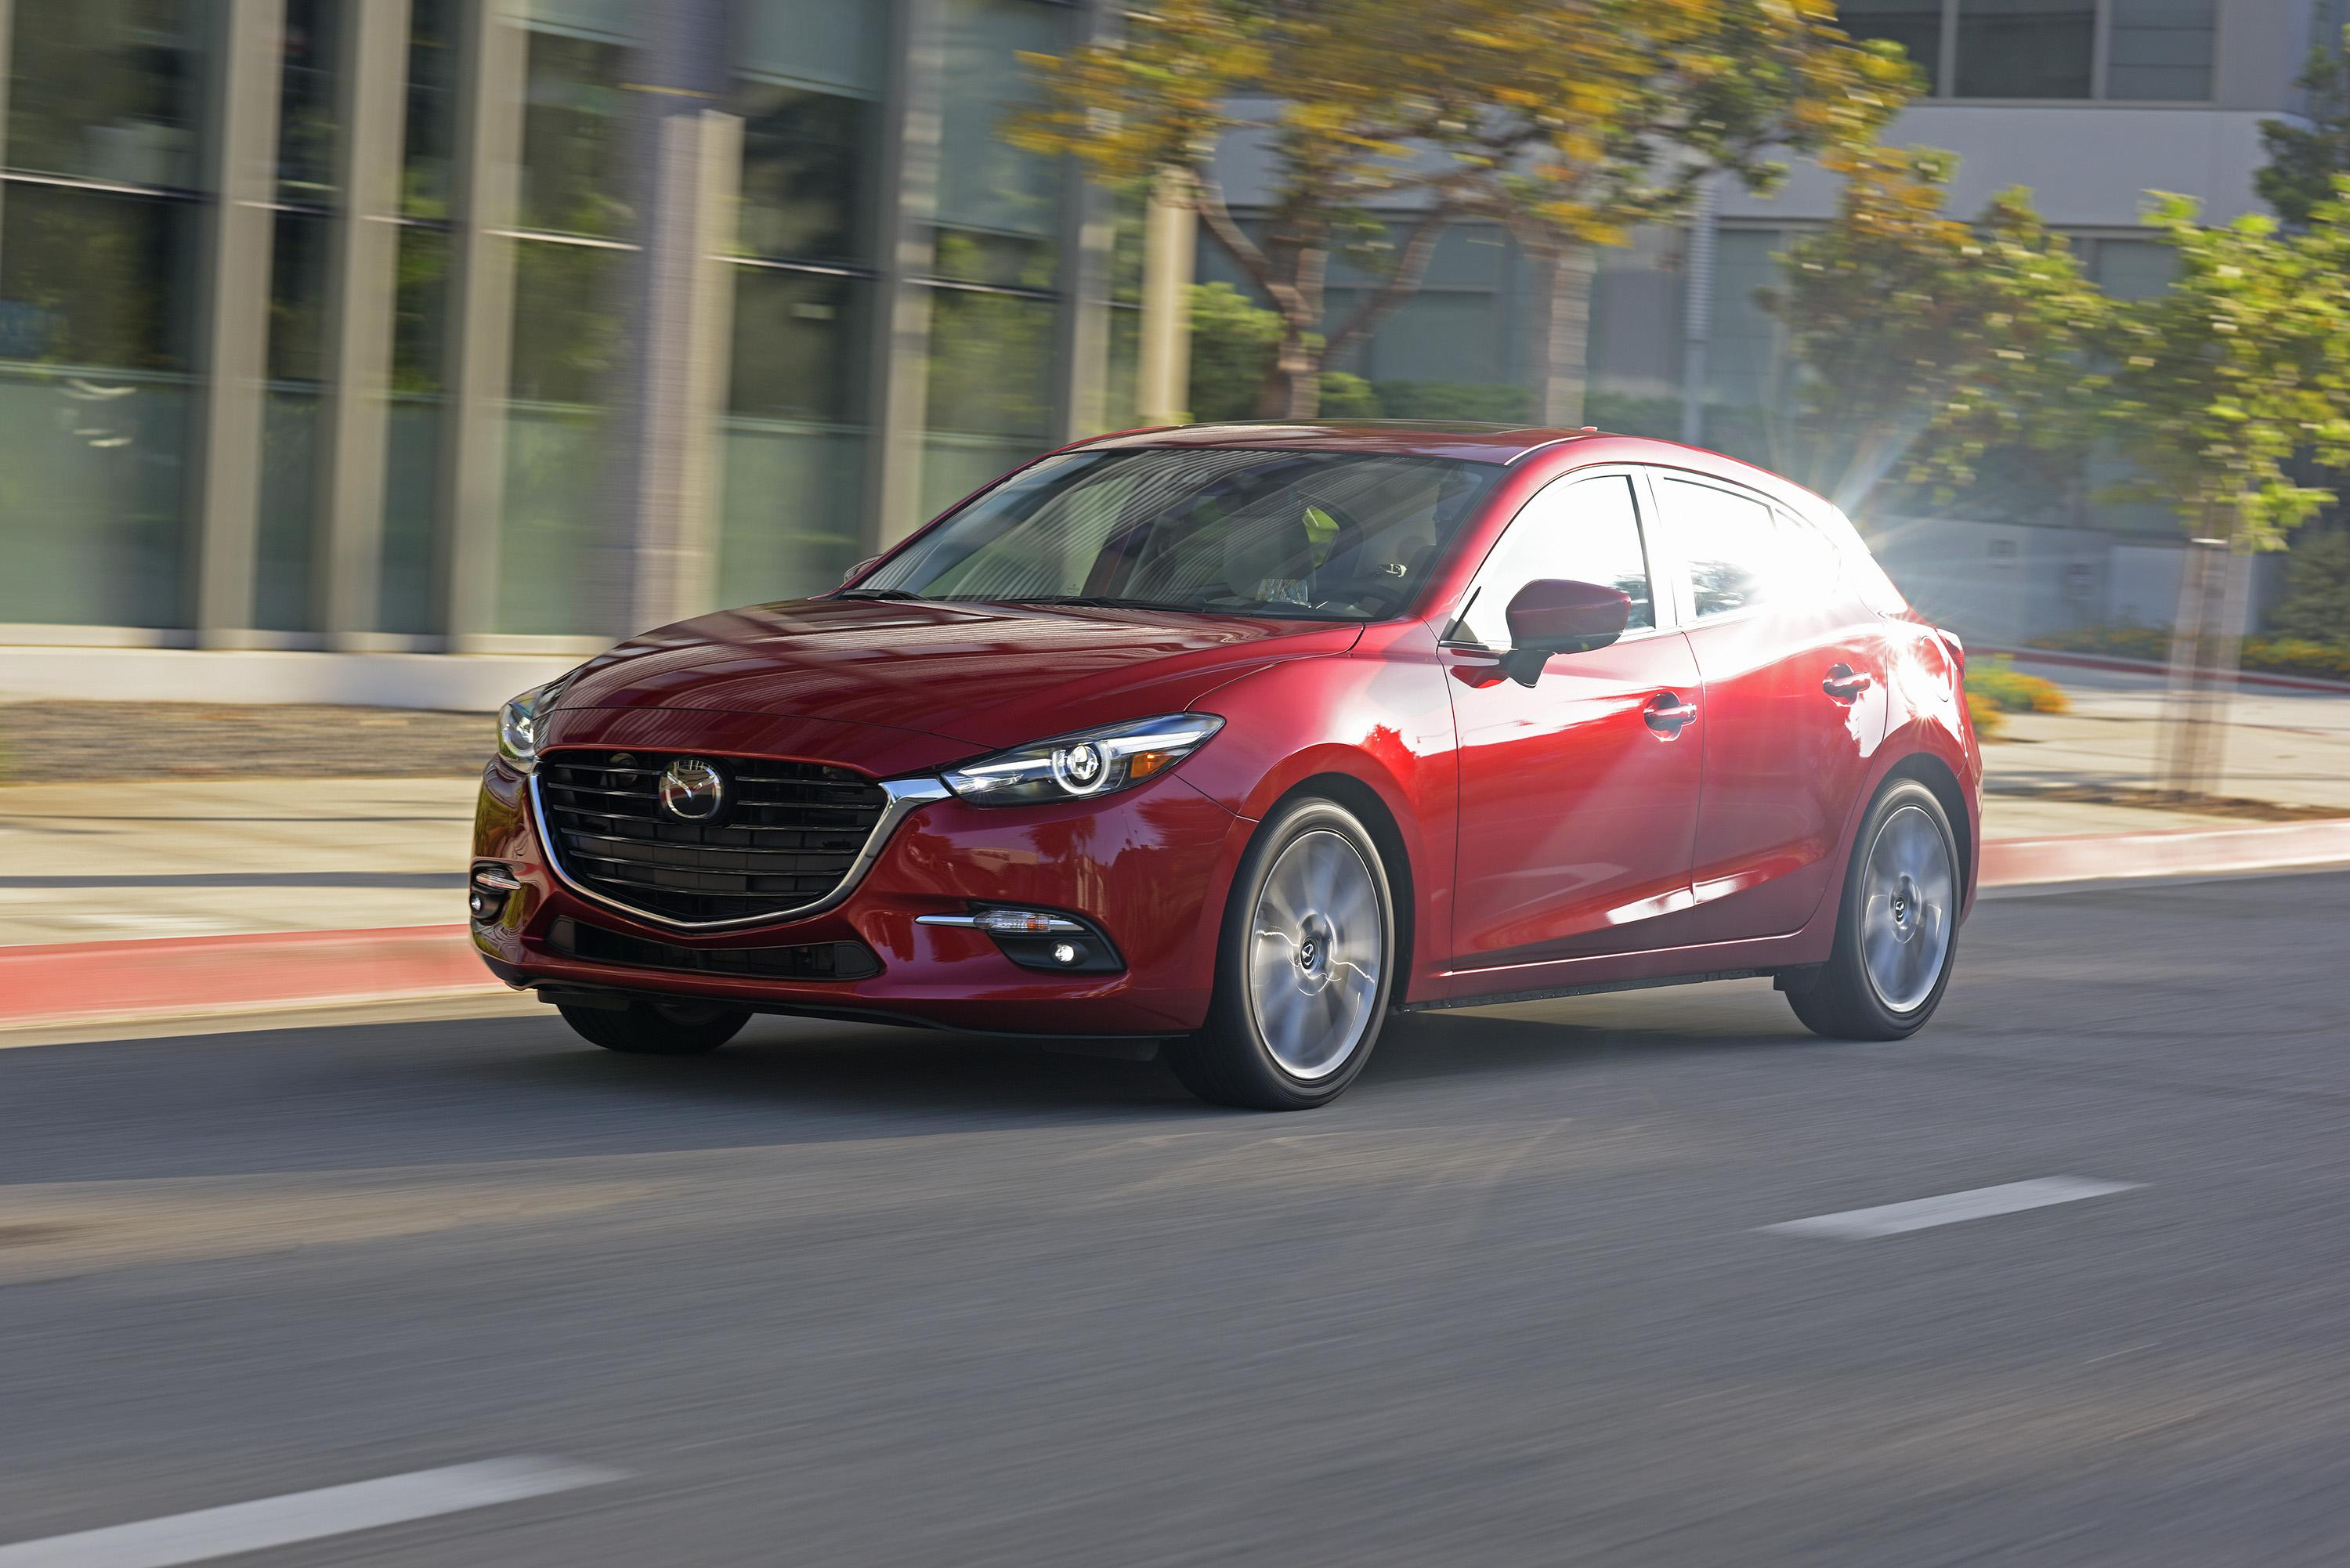 View of red 2017 Mazda3 in motion on city street